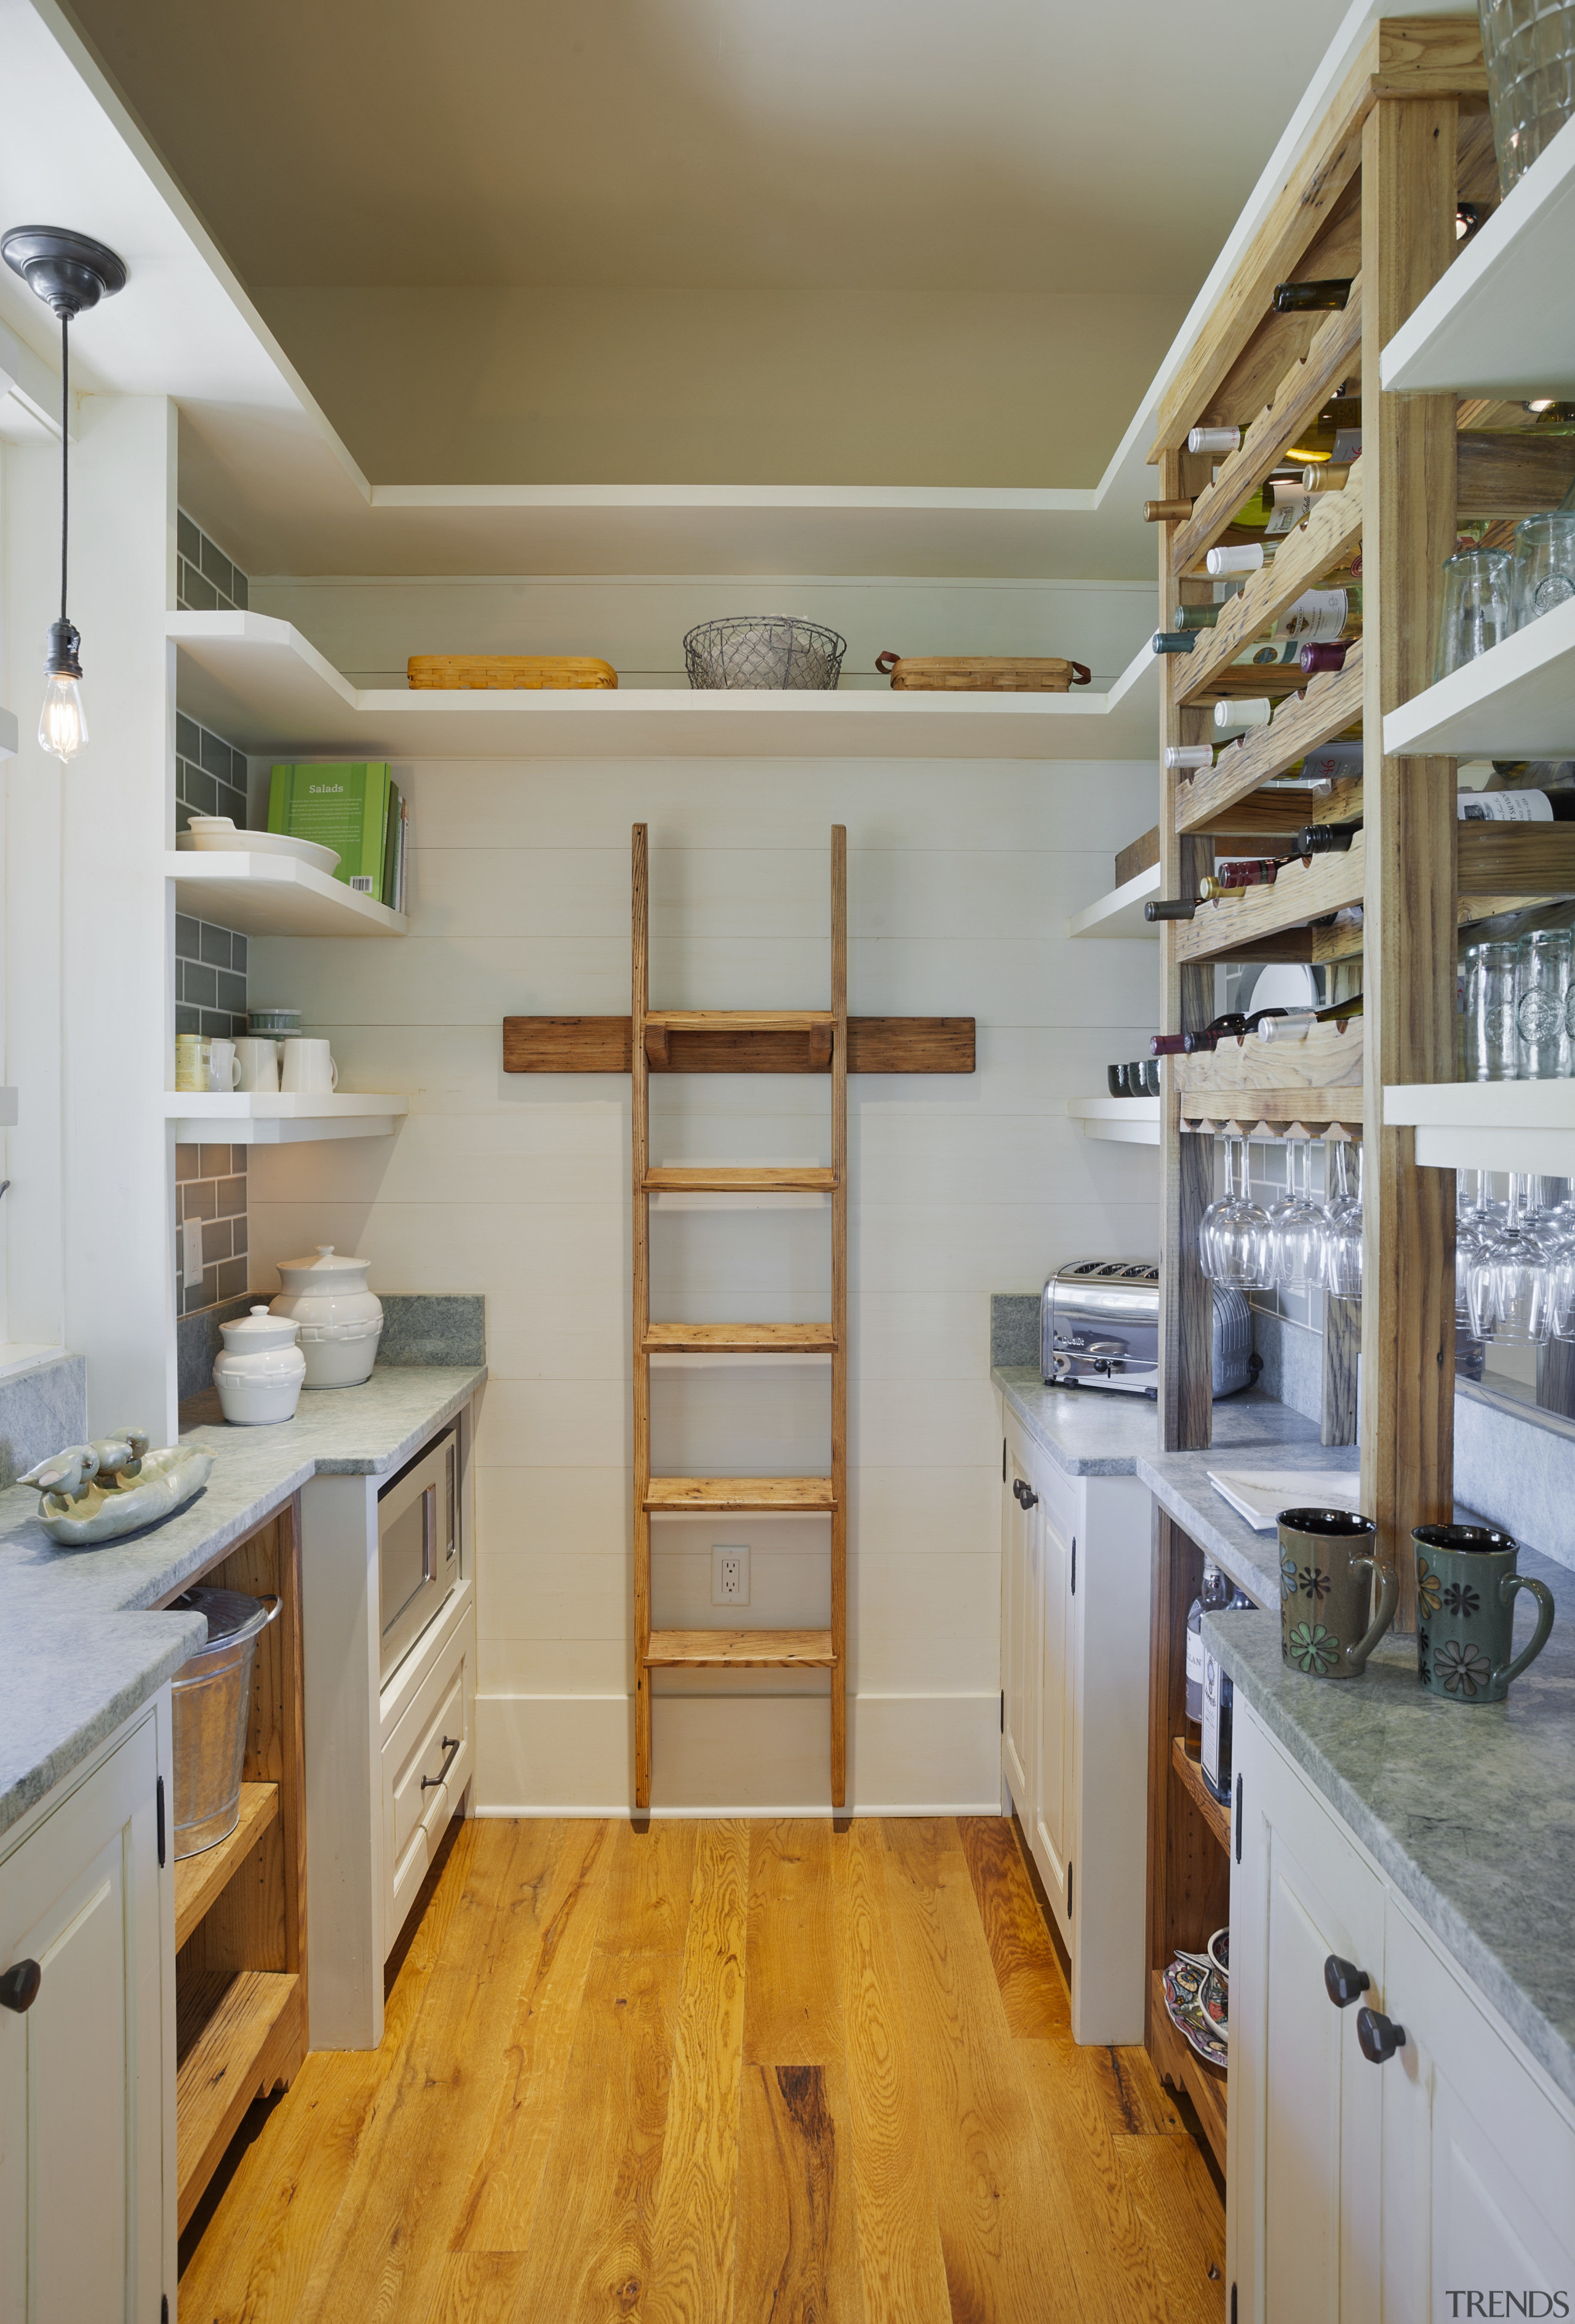 This scullery has a mirrored backsplash behind the cabinetry, countertop, cuisine classique, floor, flooring, hardwood, home, interior design, kitchen, laminate flooring, room, shelf, shelving, wood, wood flooring, gray, brown